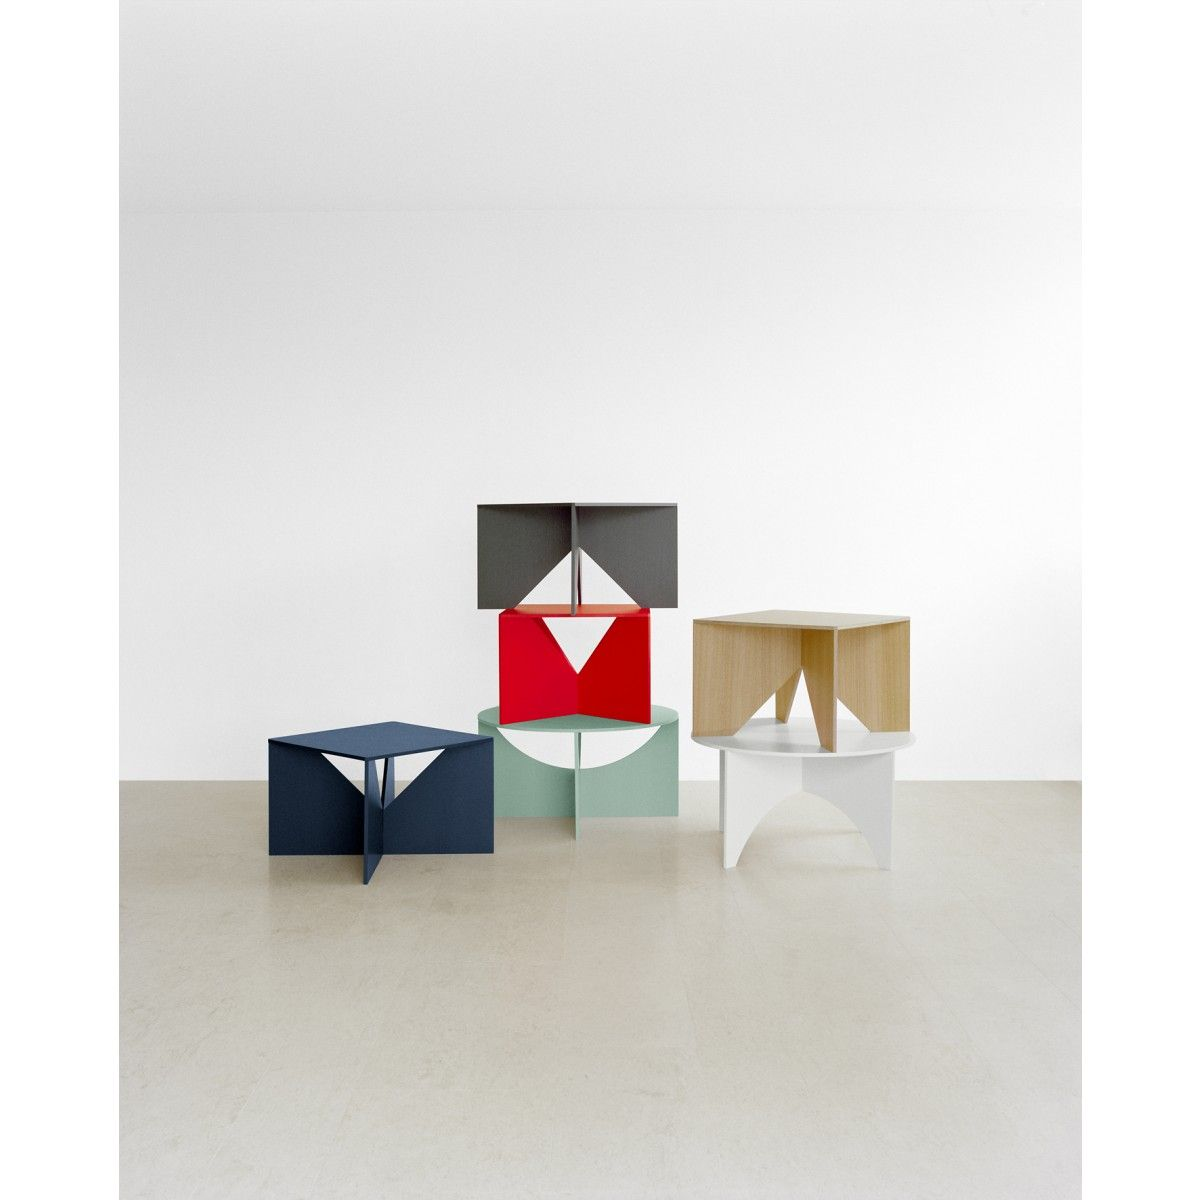 Kindermöbel Frankfurt Calvert Fk04 Coffee Tables By Einrichten Design Via